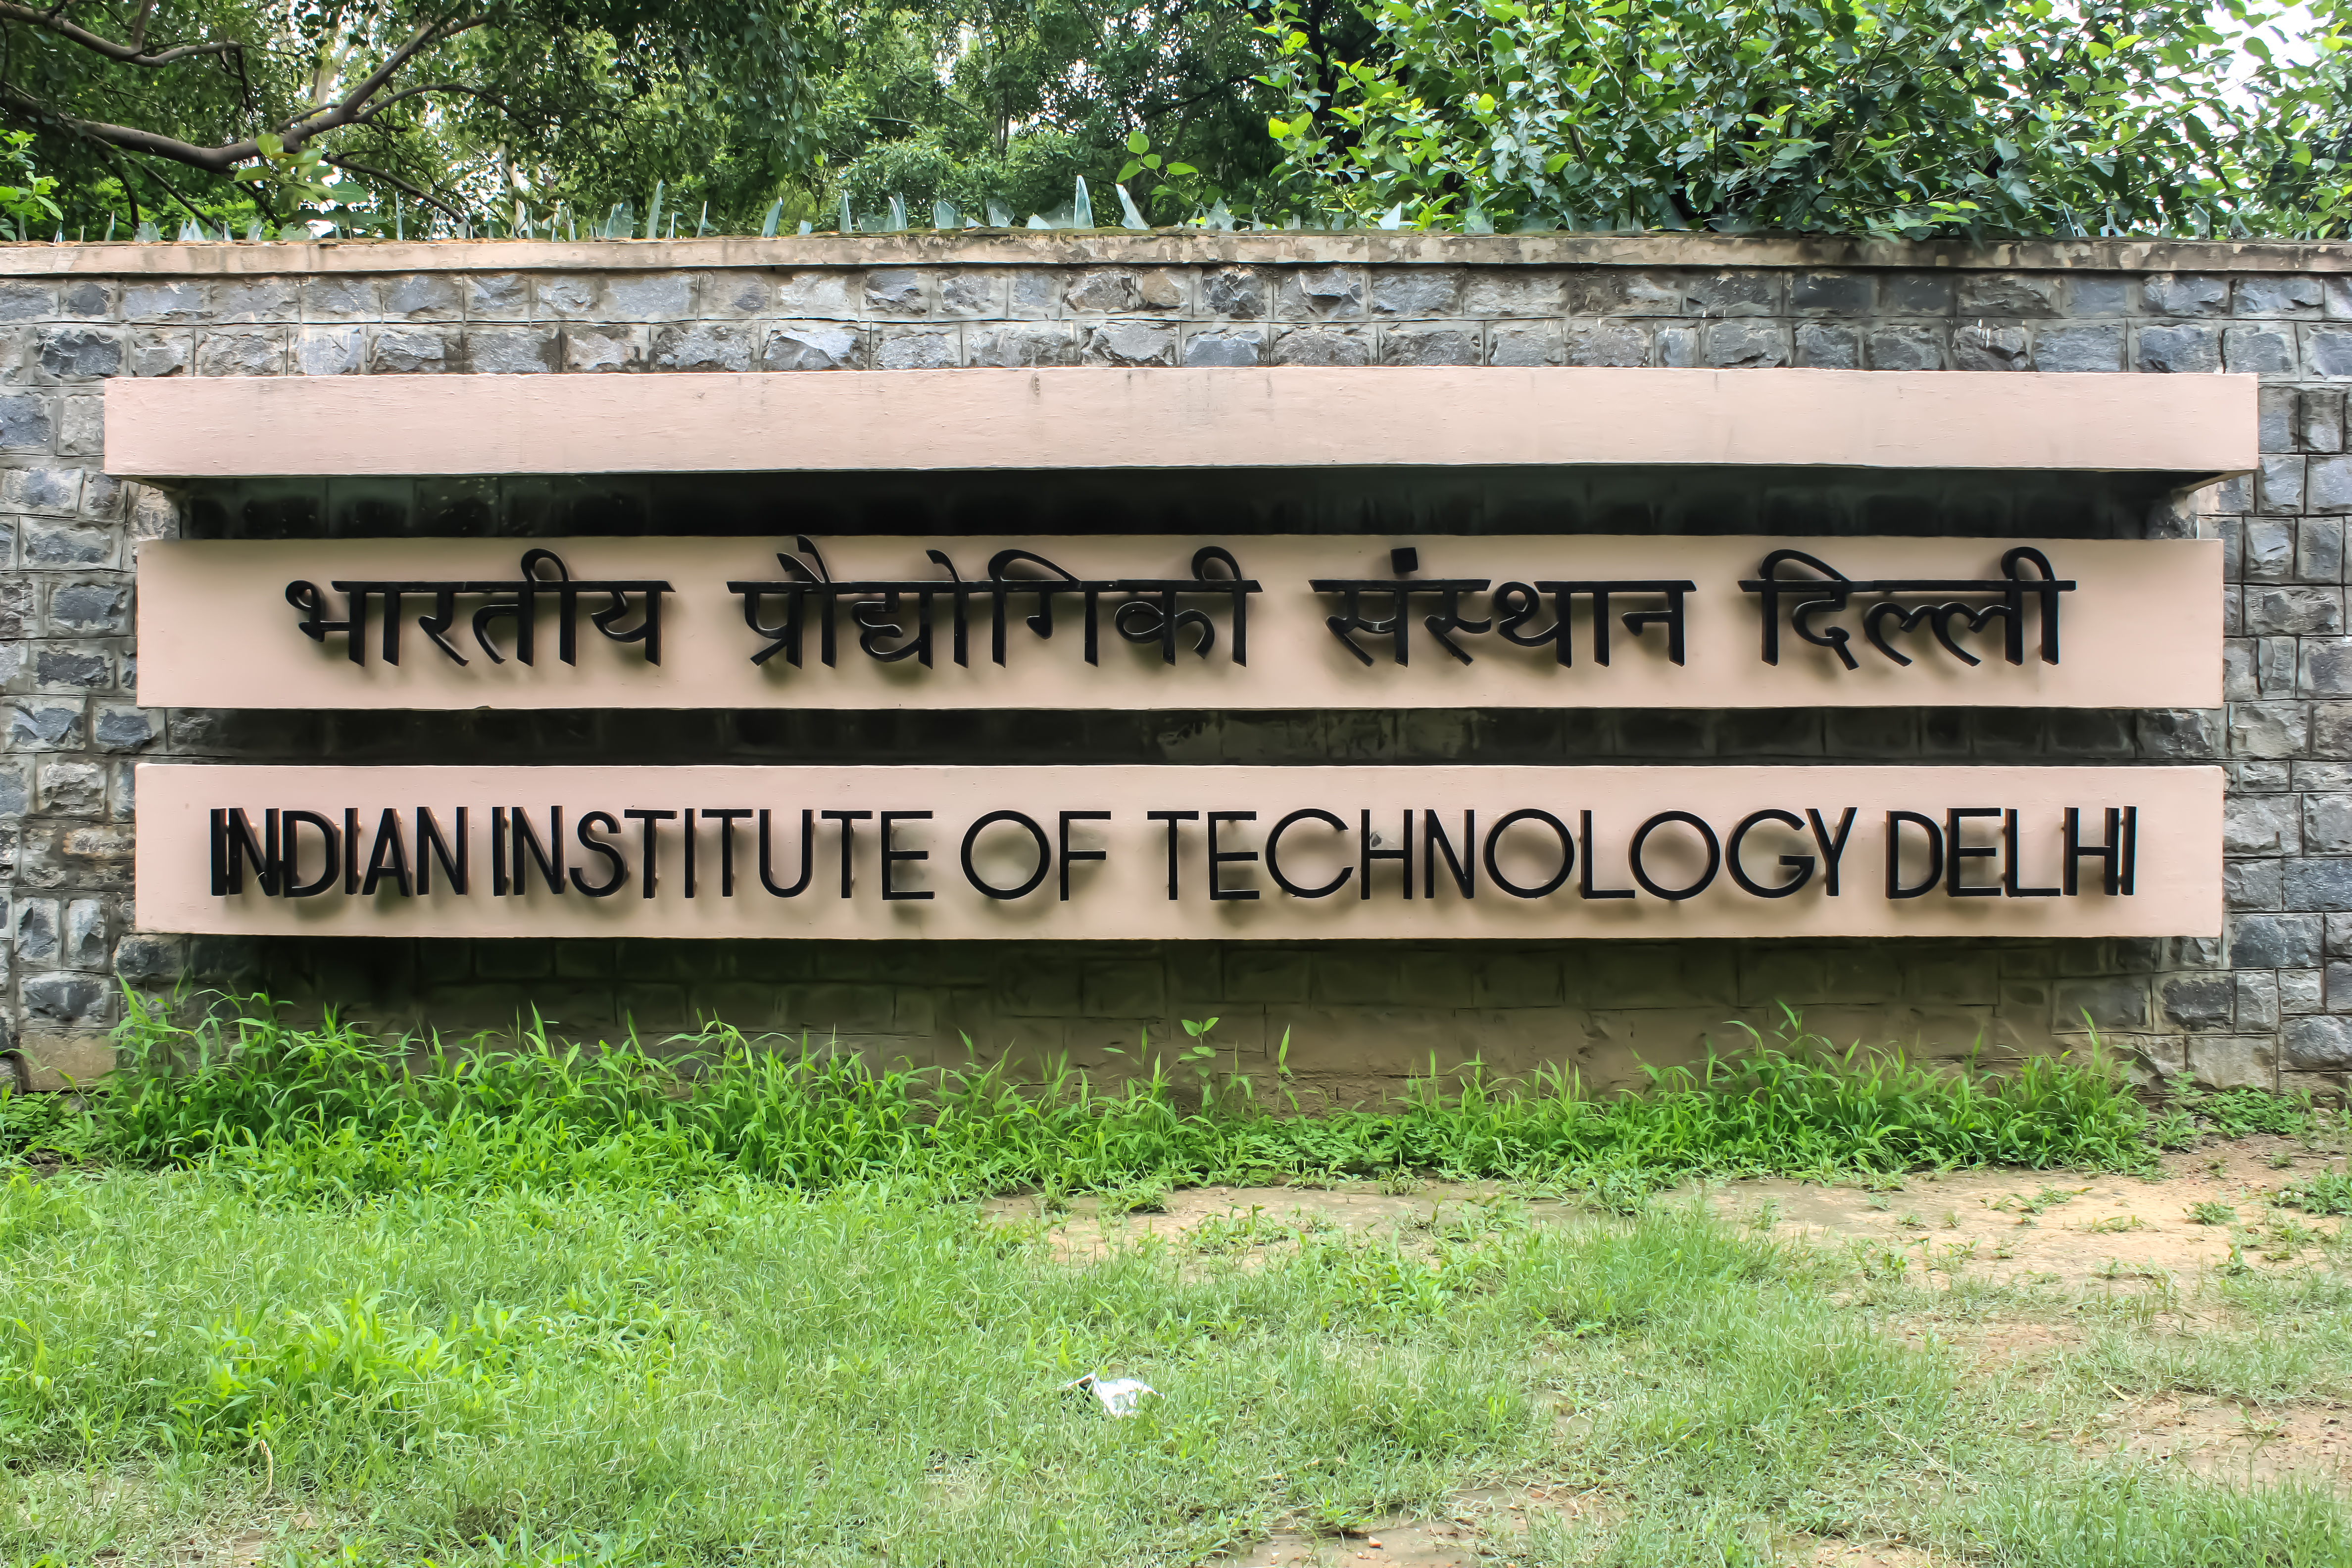 Indian Institute of Technology Delhi - Wikiwand